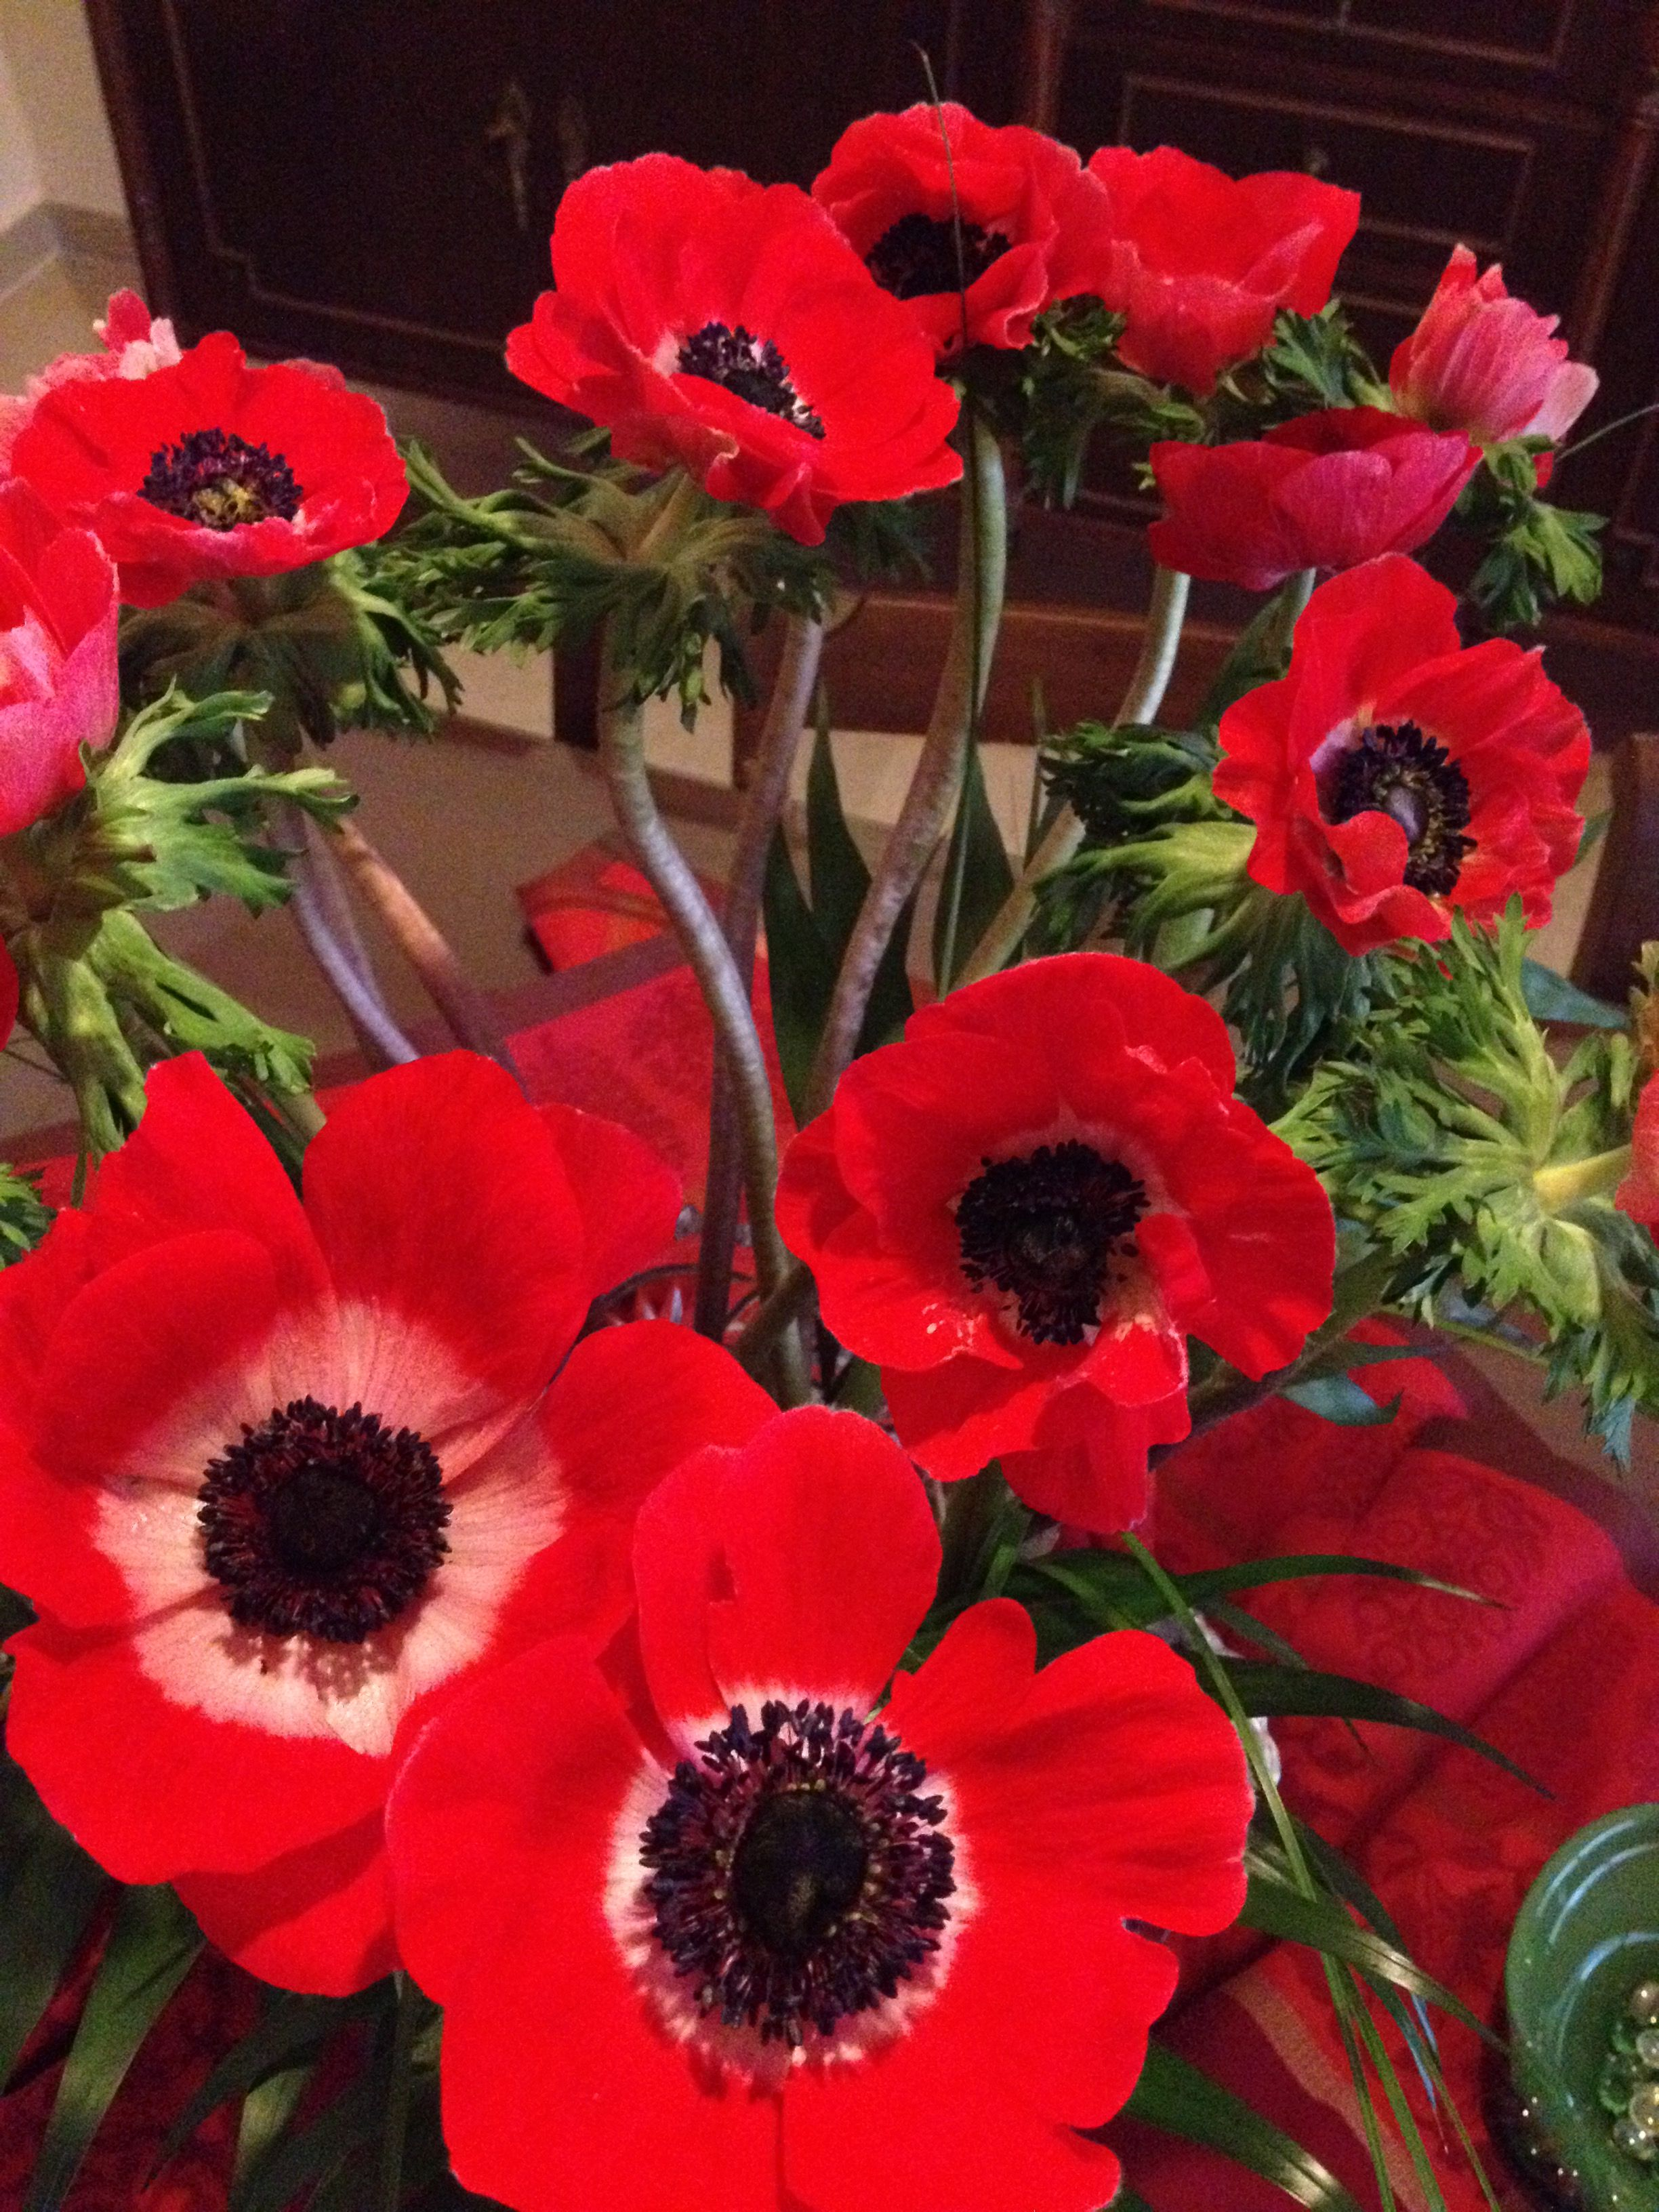 Gorgeous Red Anemones Red Flowers Bulb Flowers Anemone Flower